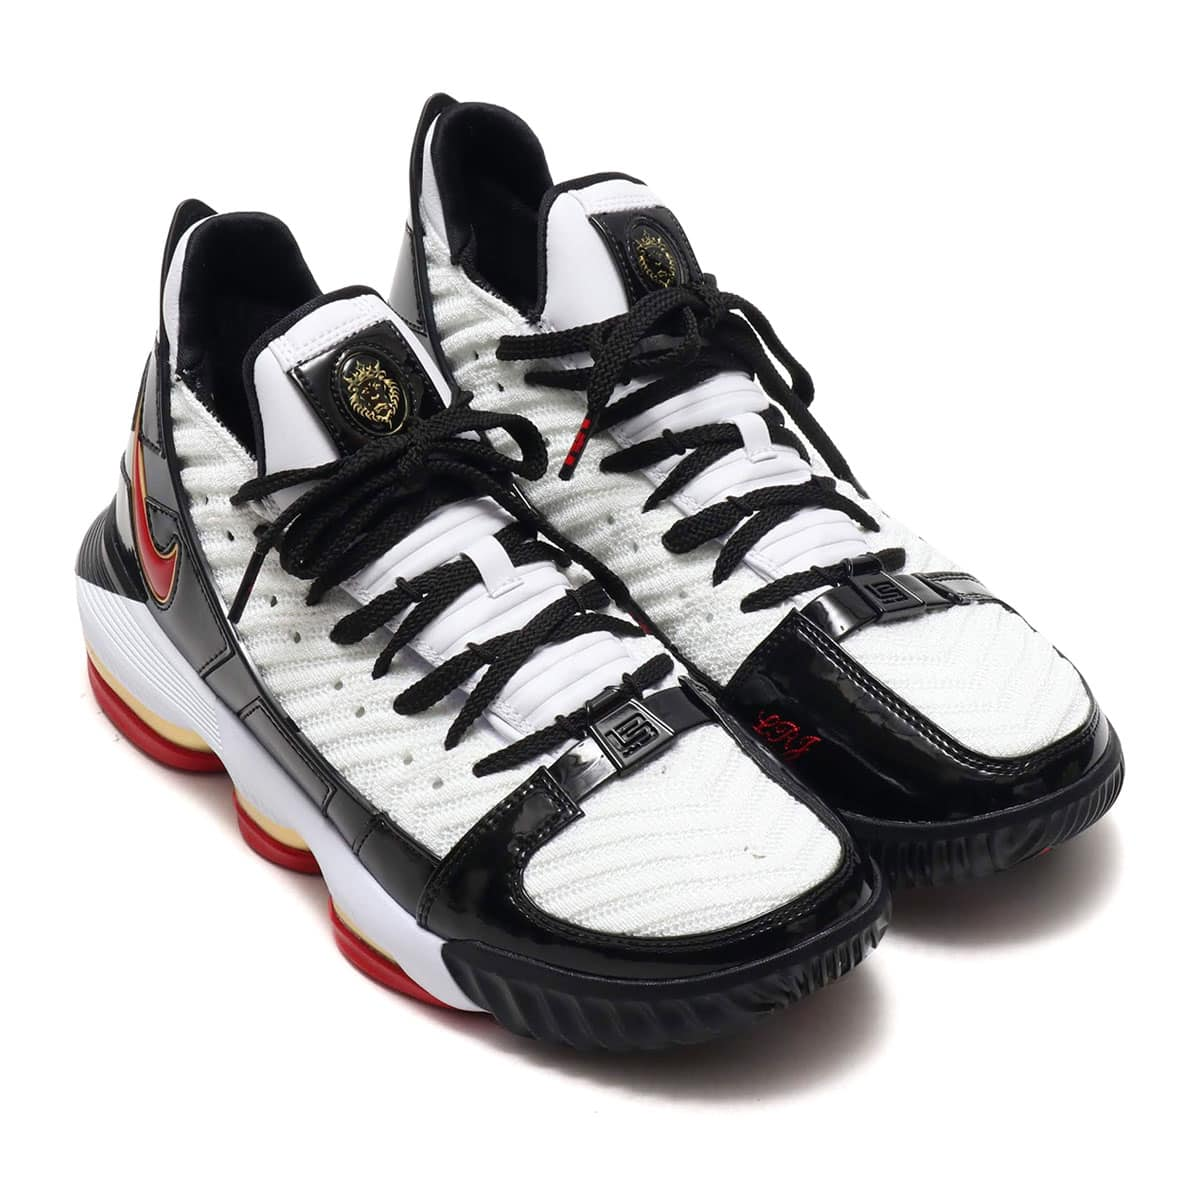 NIKE LEBRON XVI SB WHITE/COMET RED-BLACK 19SU-S_photo_large